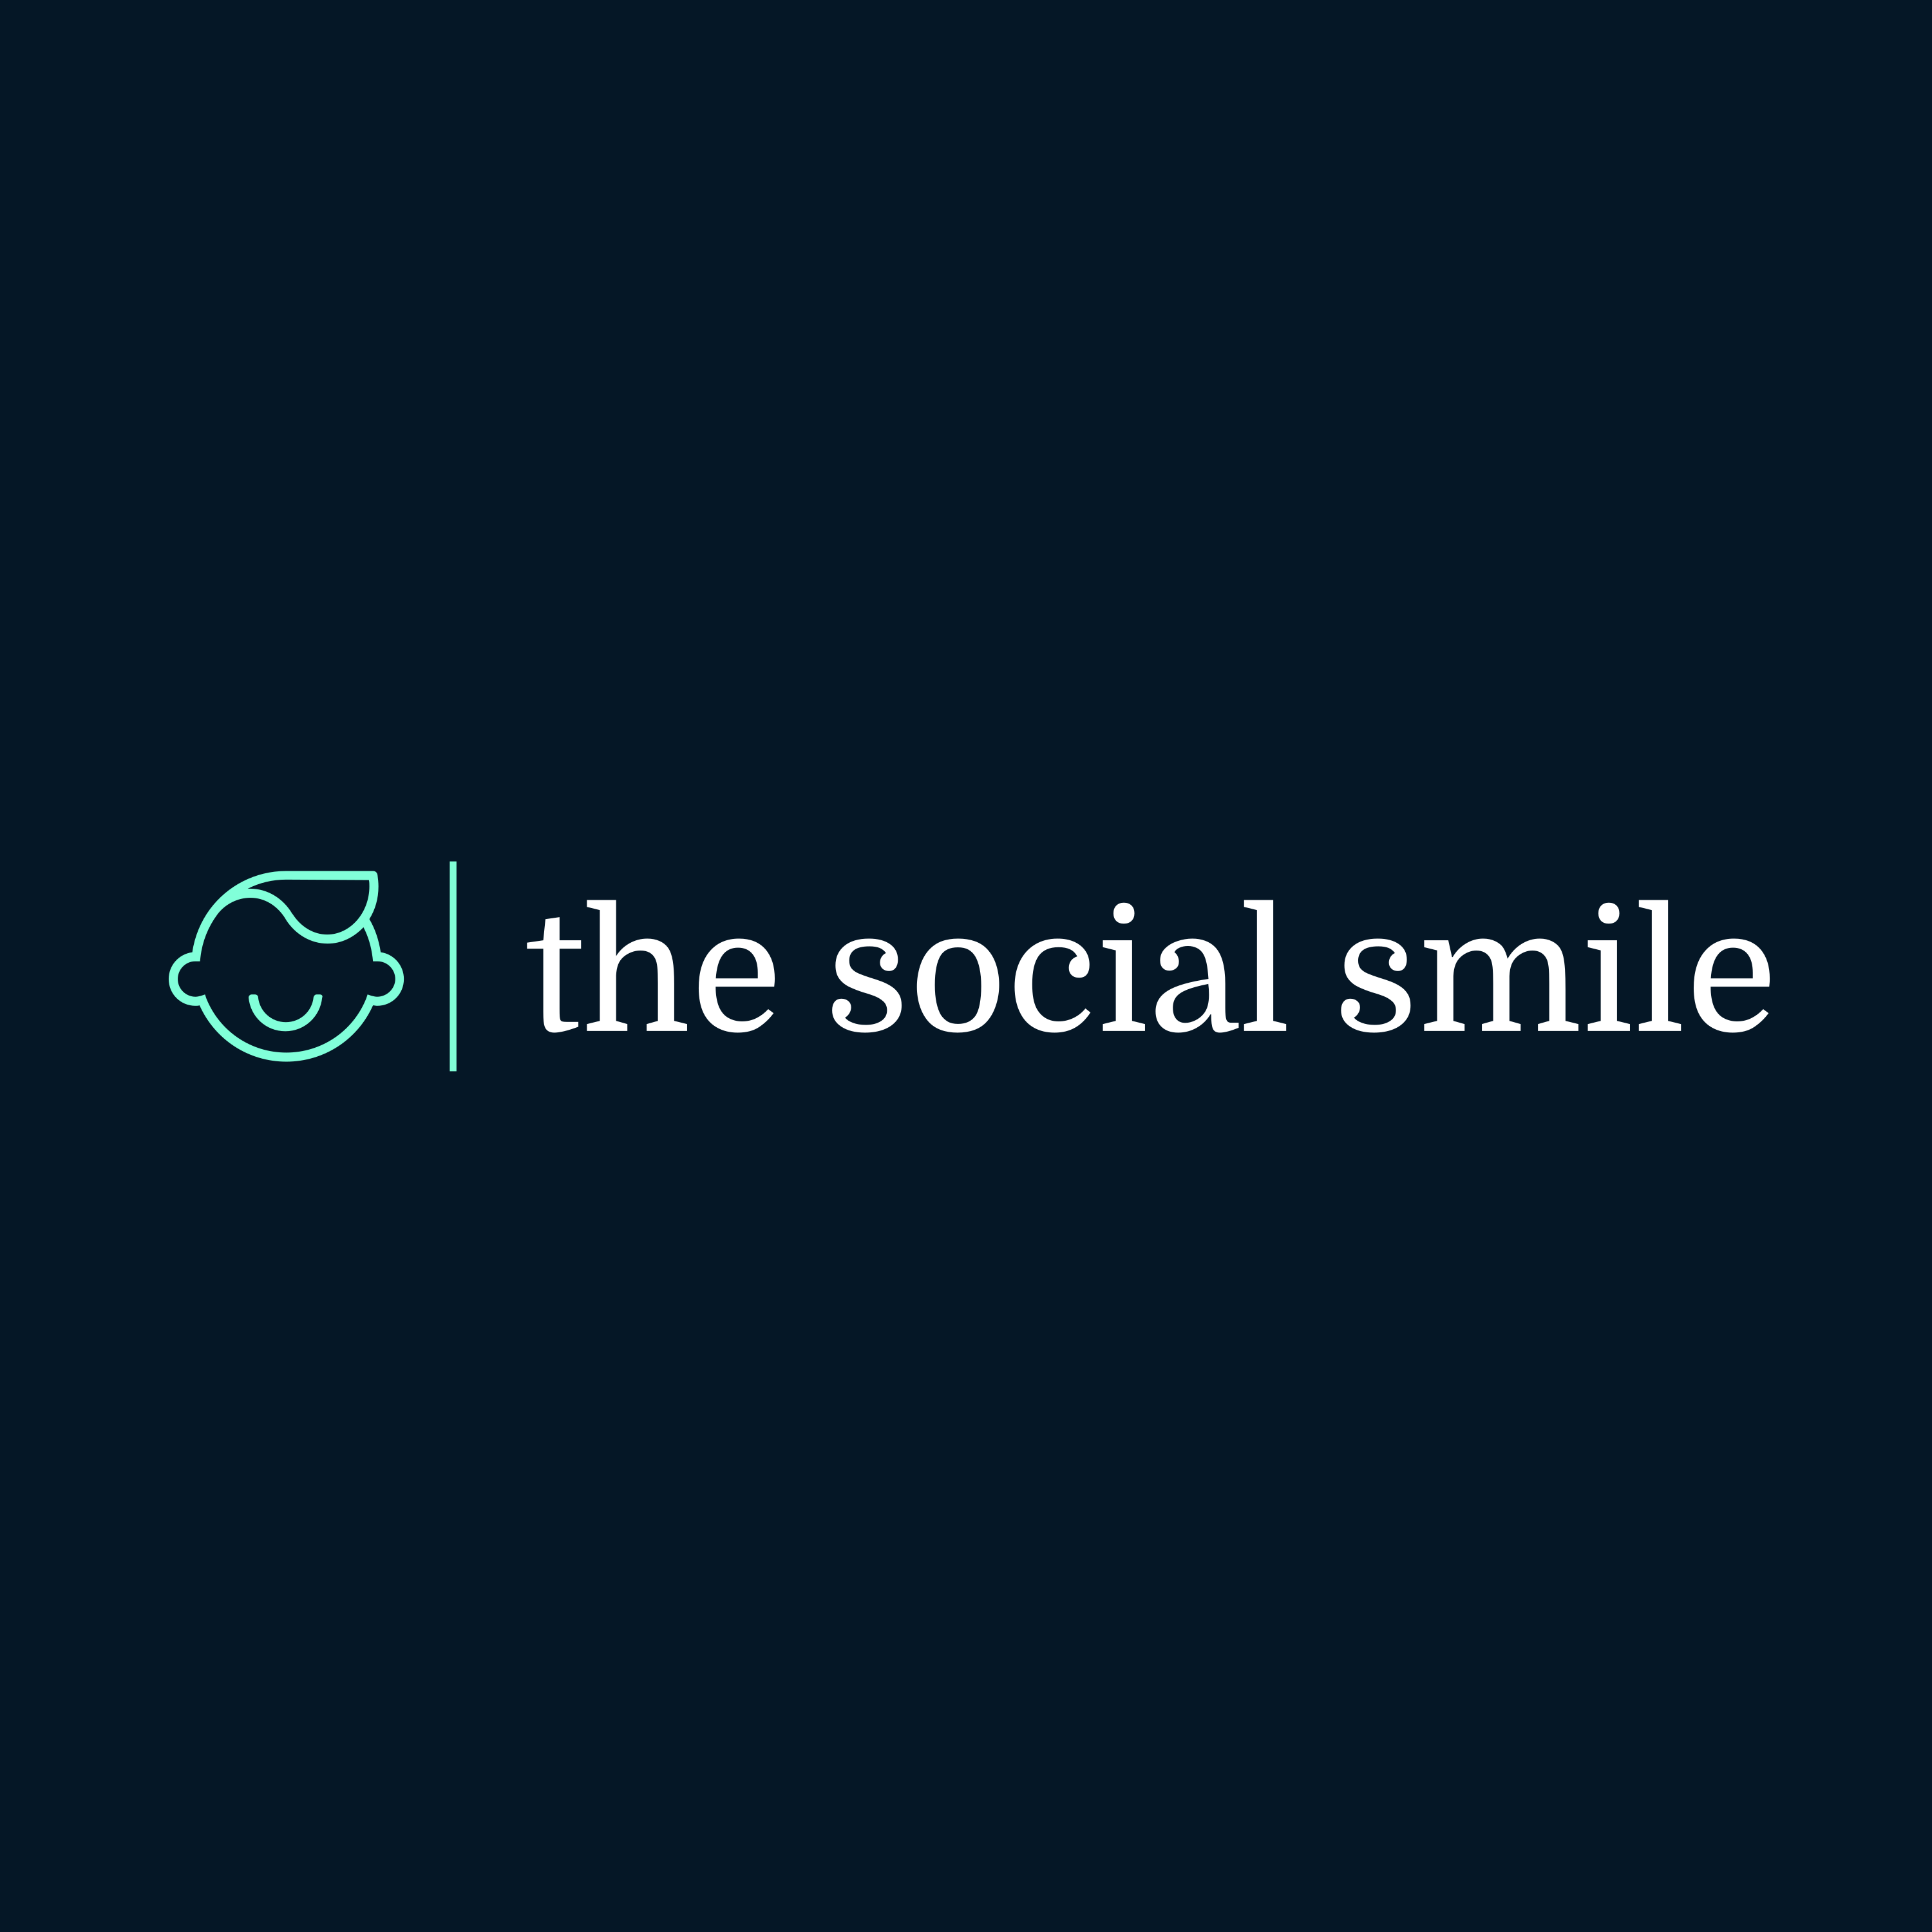 the social smile